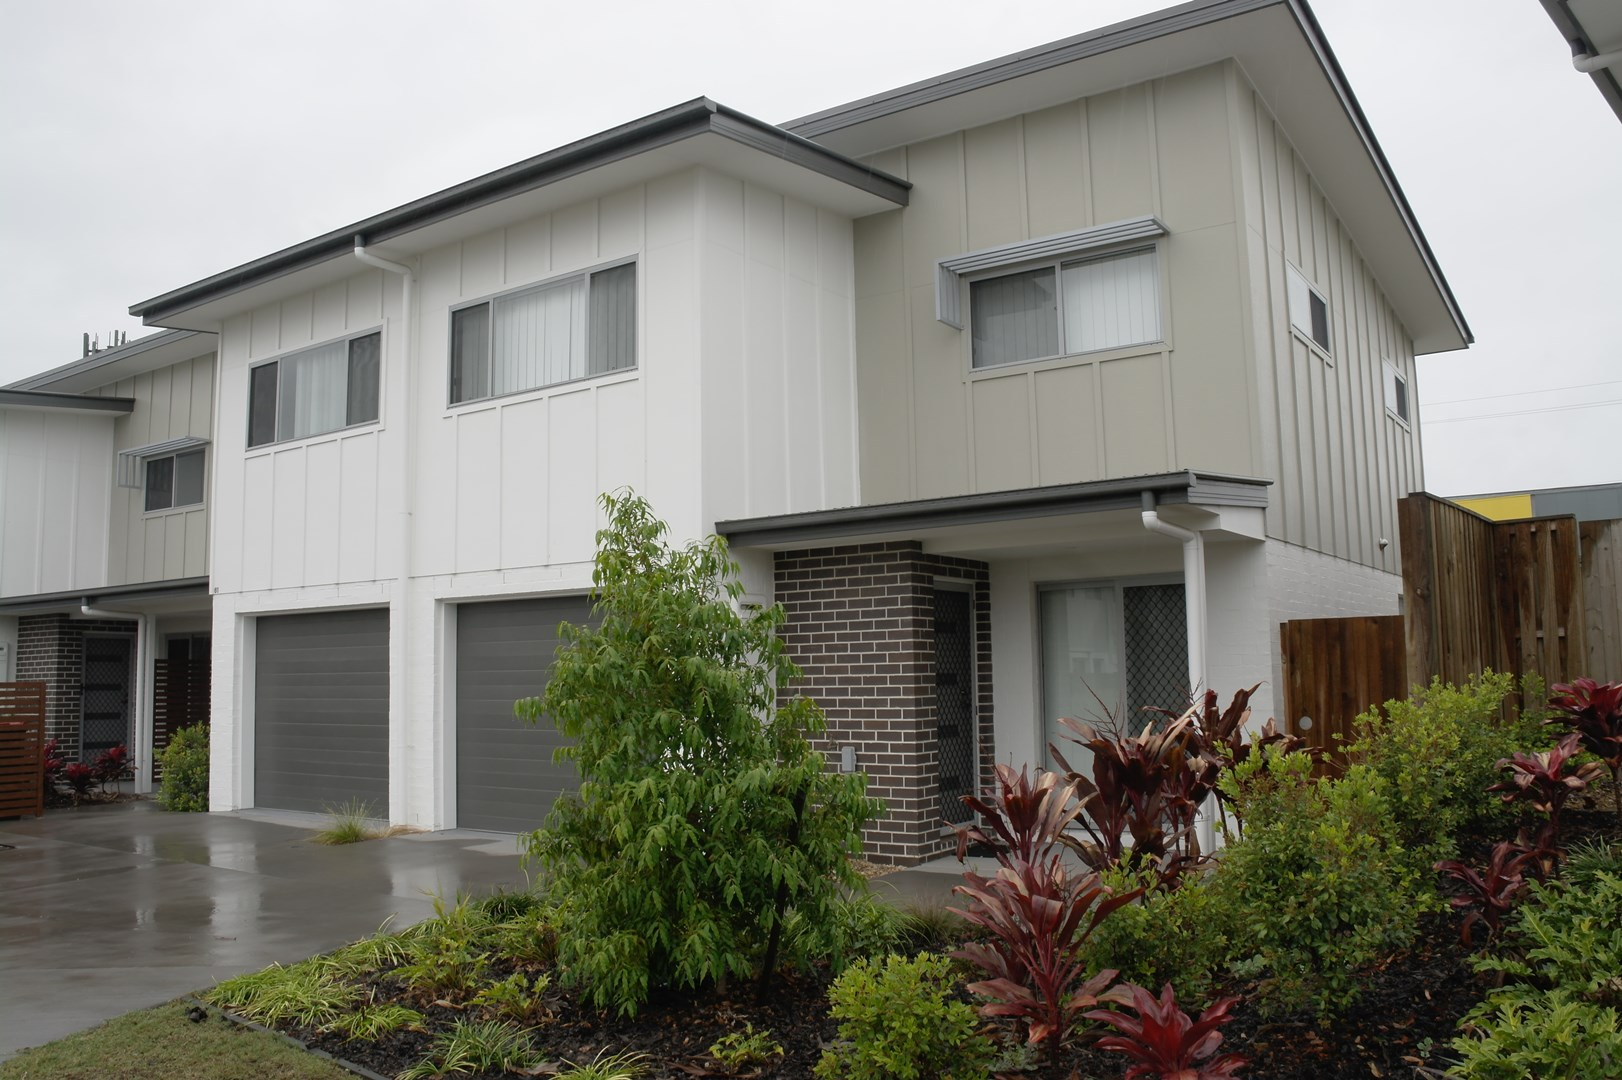 62 90 northquarter drive murrumba downs qld 4503 for Master down townhomes